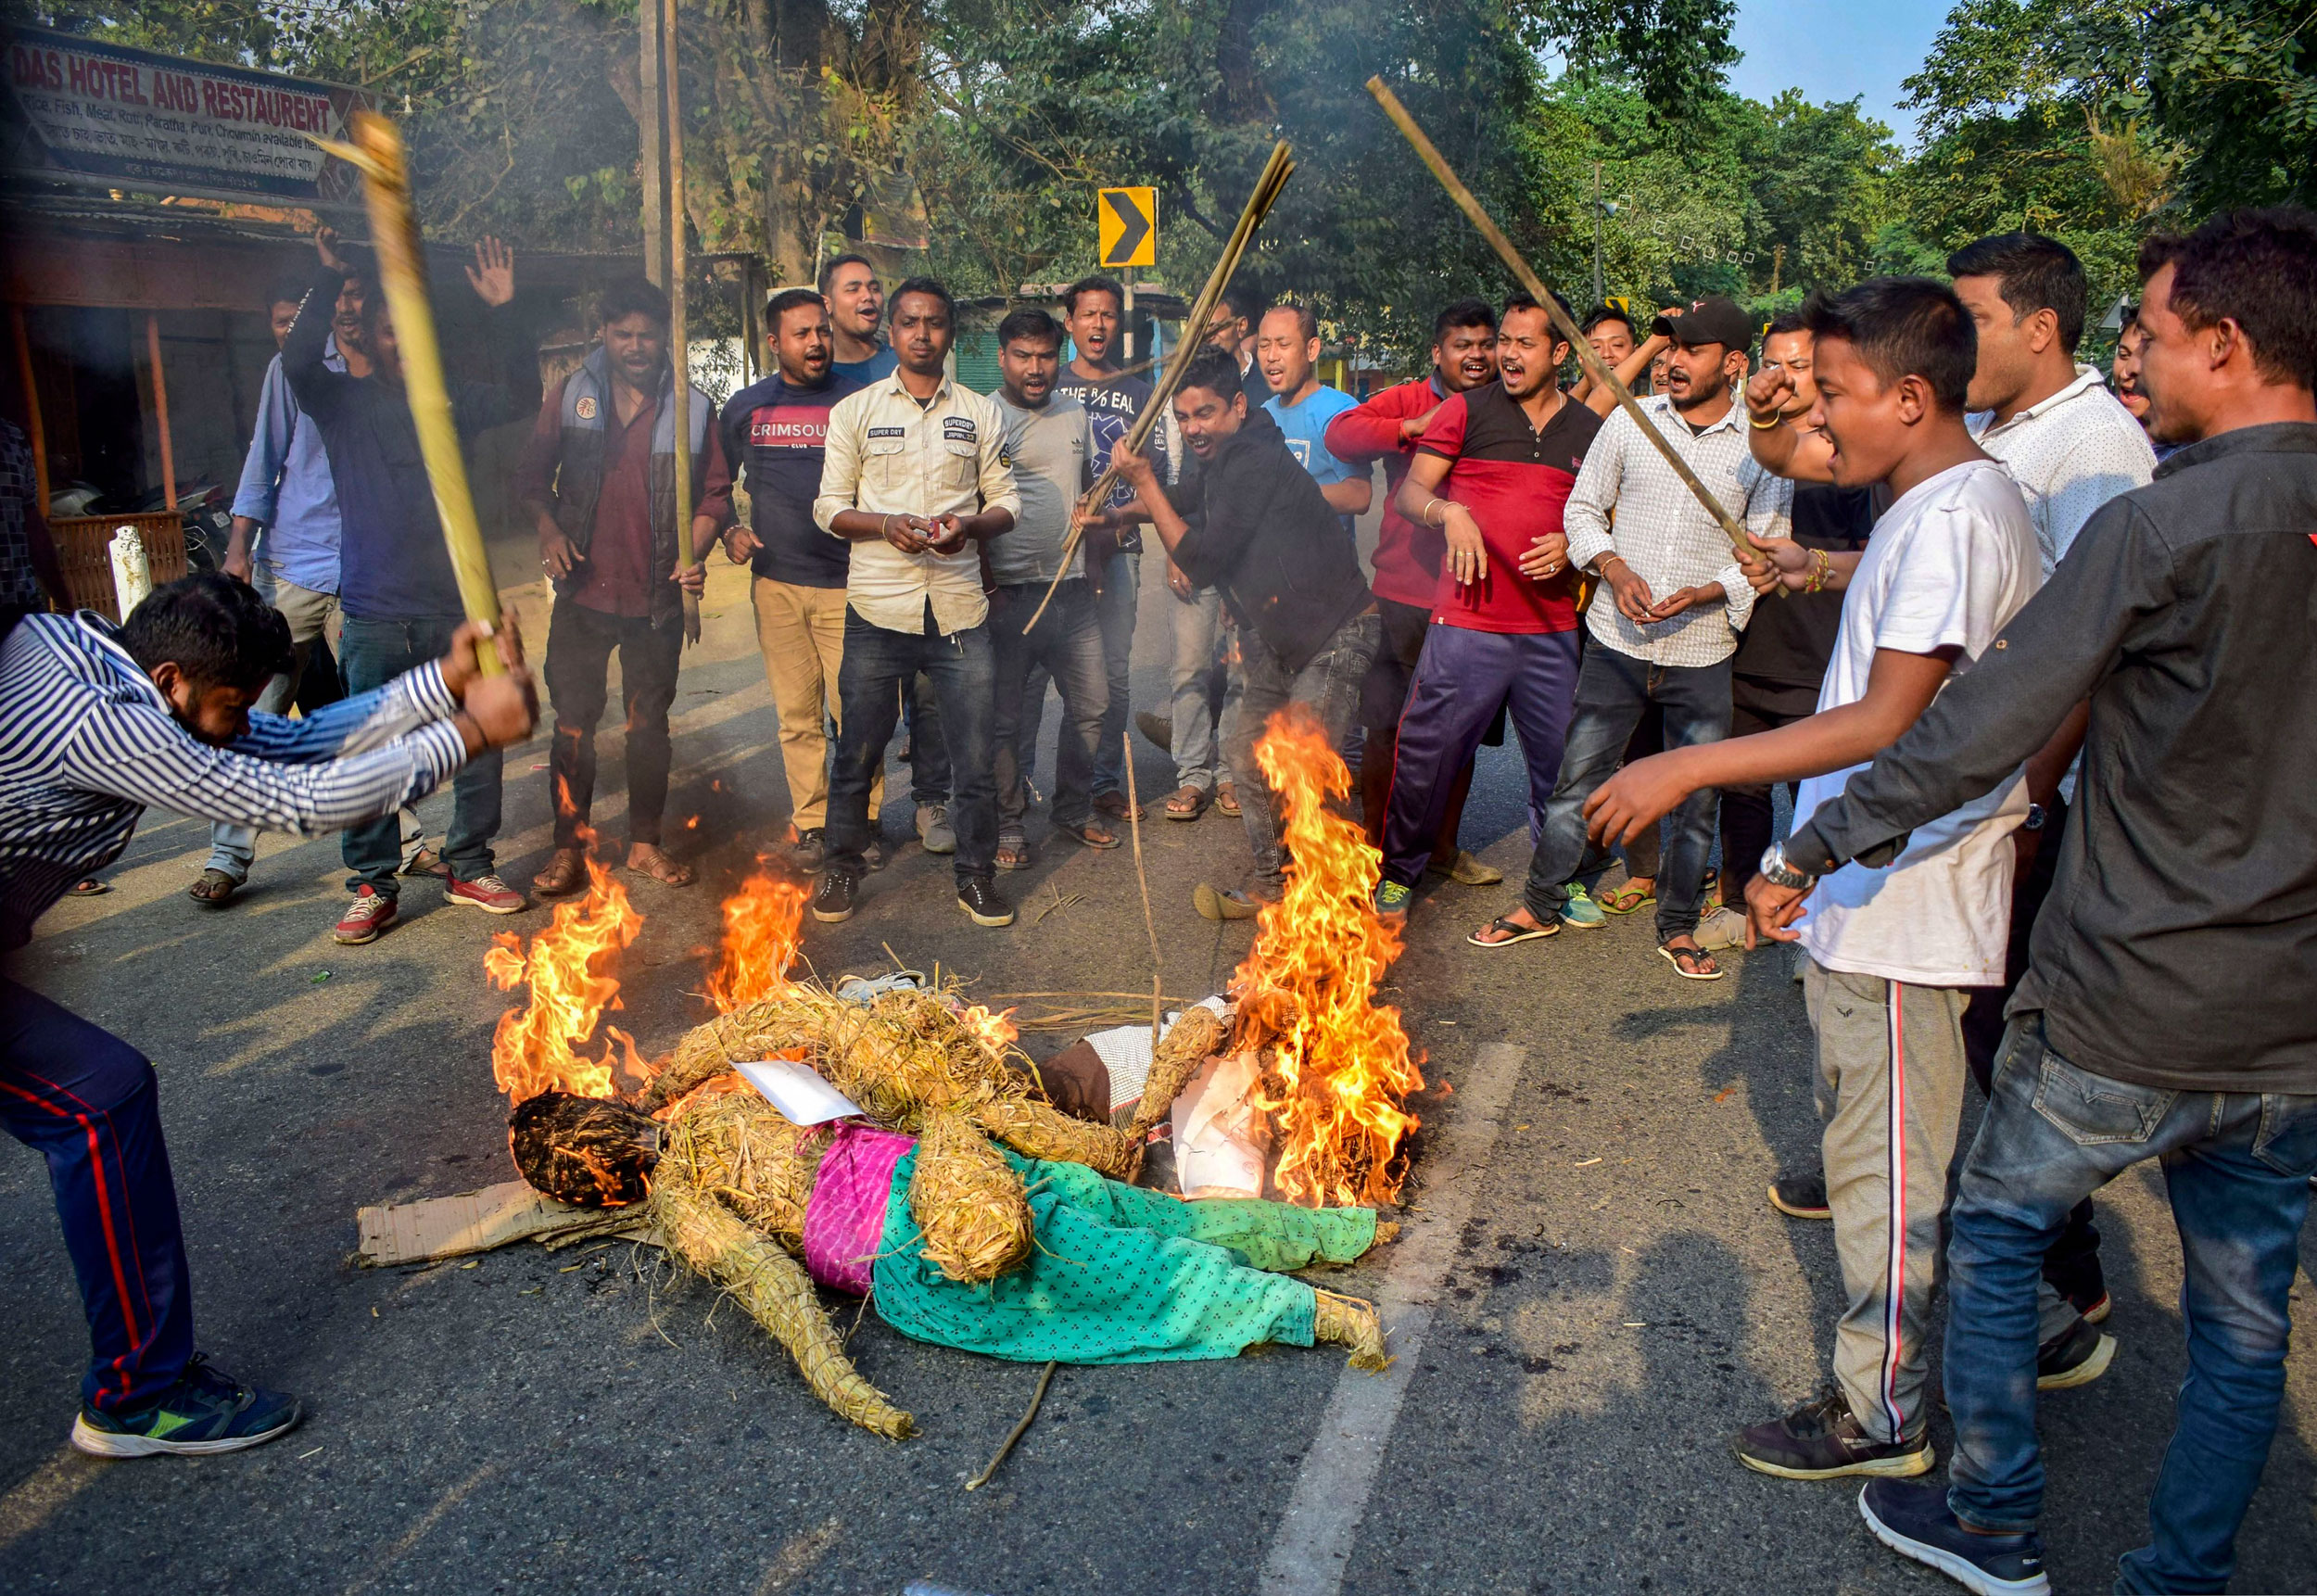 Demonstrators burn an effigy and shout slogans on National Highway 17 during a strike called by North East Students Union against the Citizenship Amendment Bill at Boko on Tuesday.